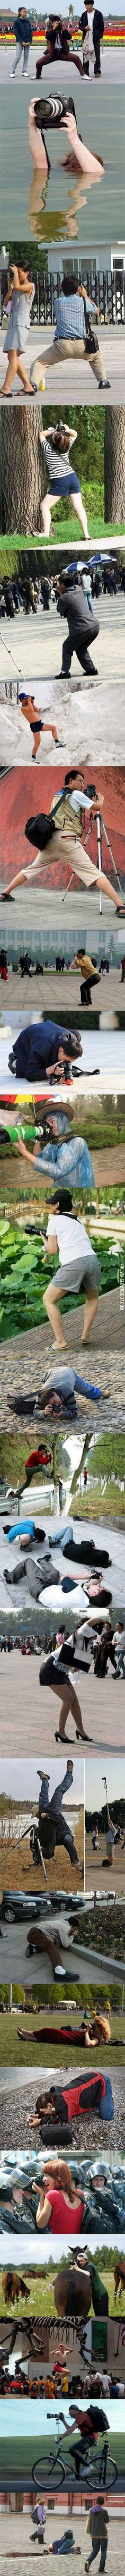 In the name of photography.